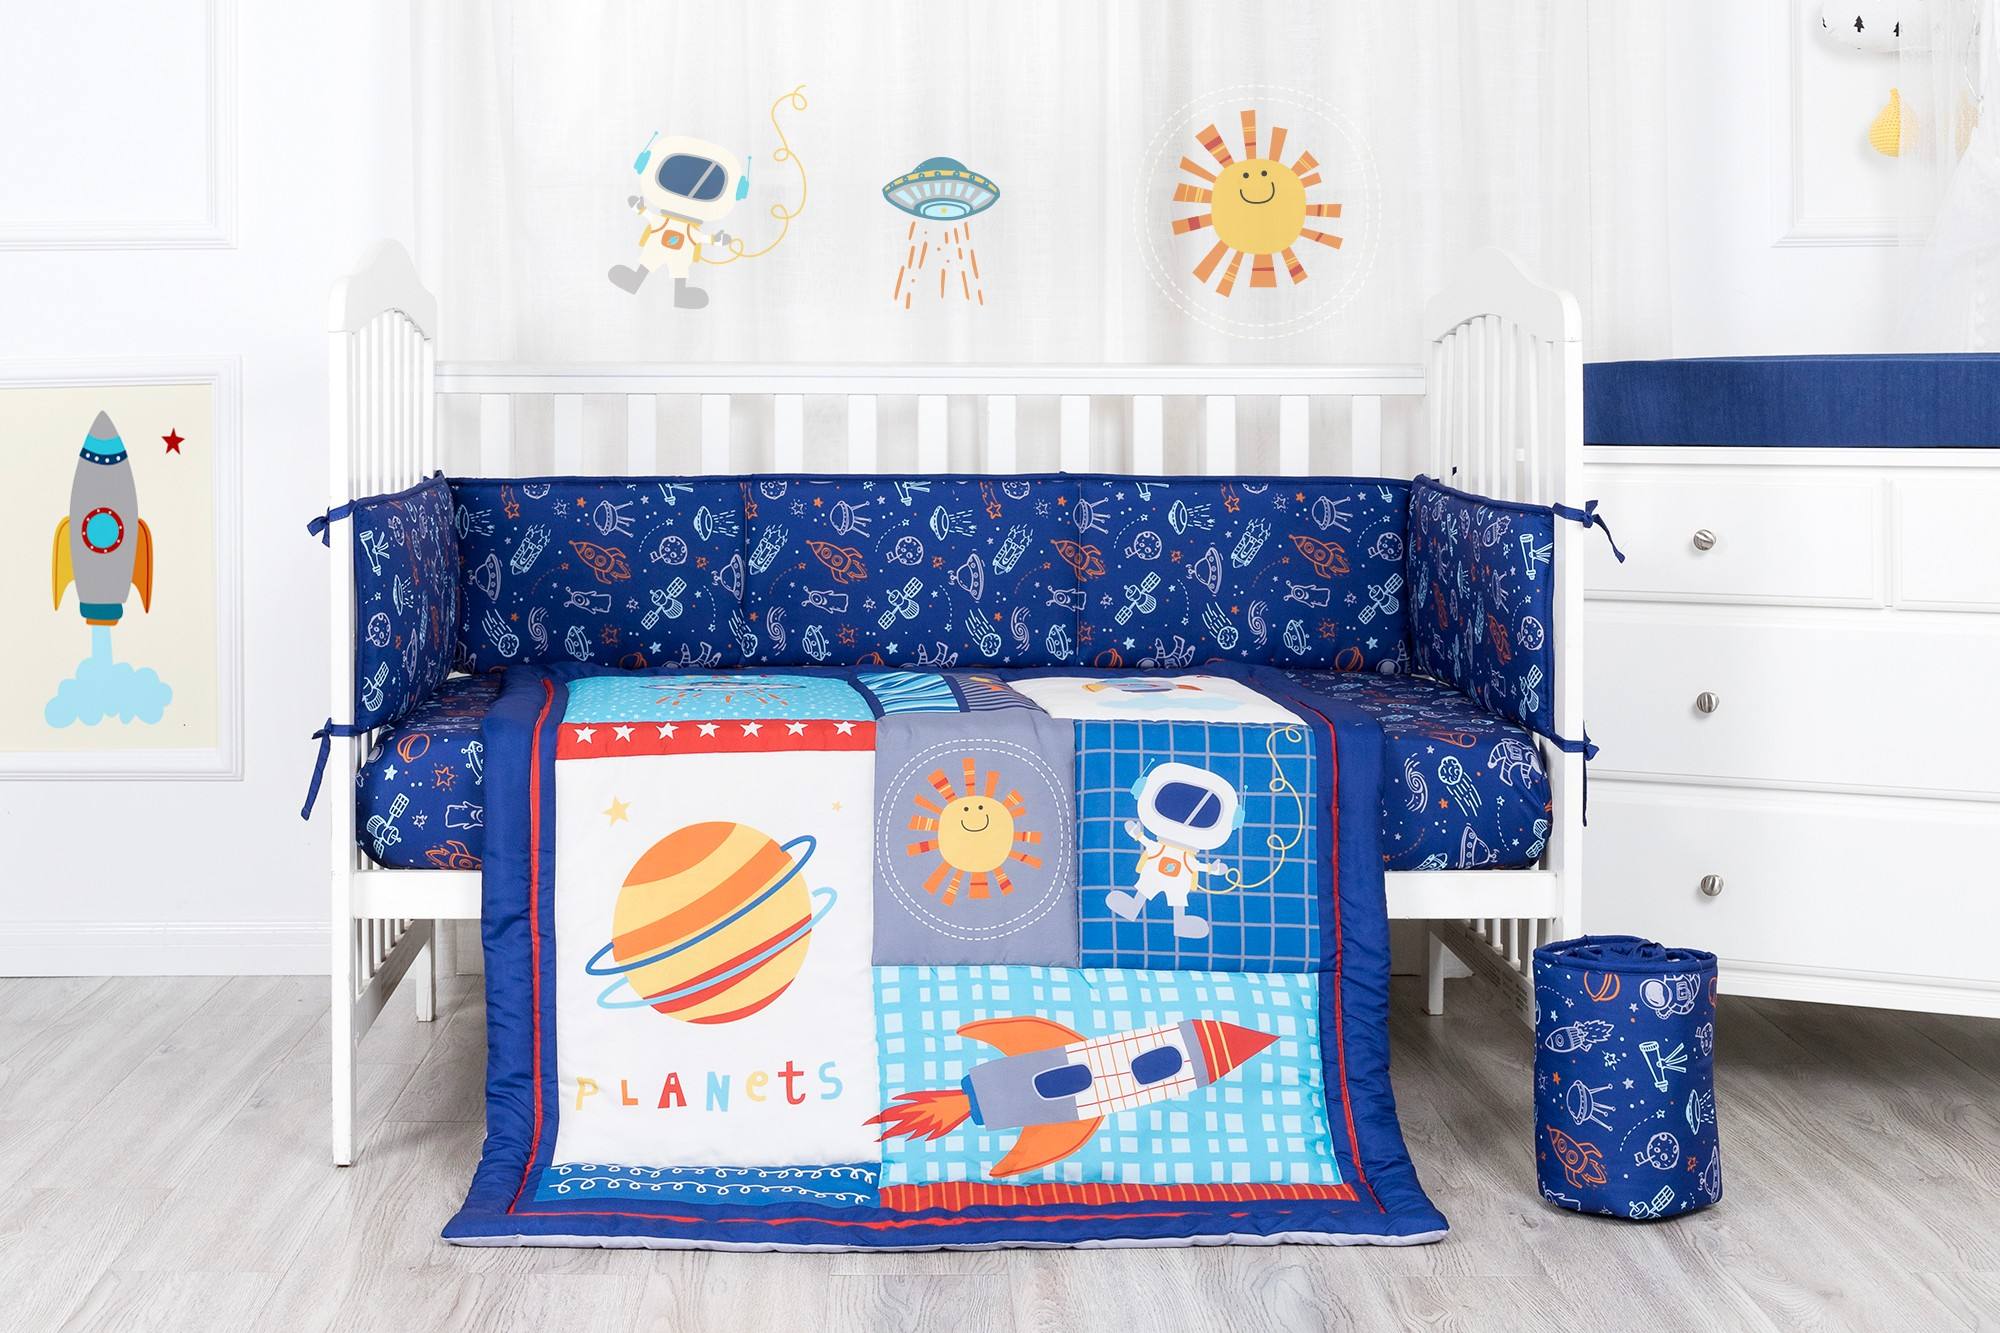 Cosmic space theme baby bedding set fitted sheet 4pc microfiber navy color crib bedding set with bumper